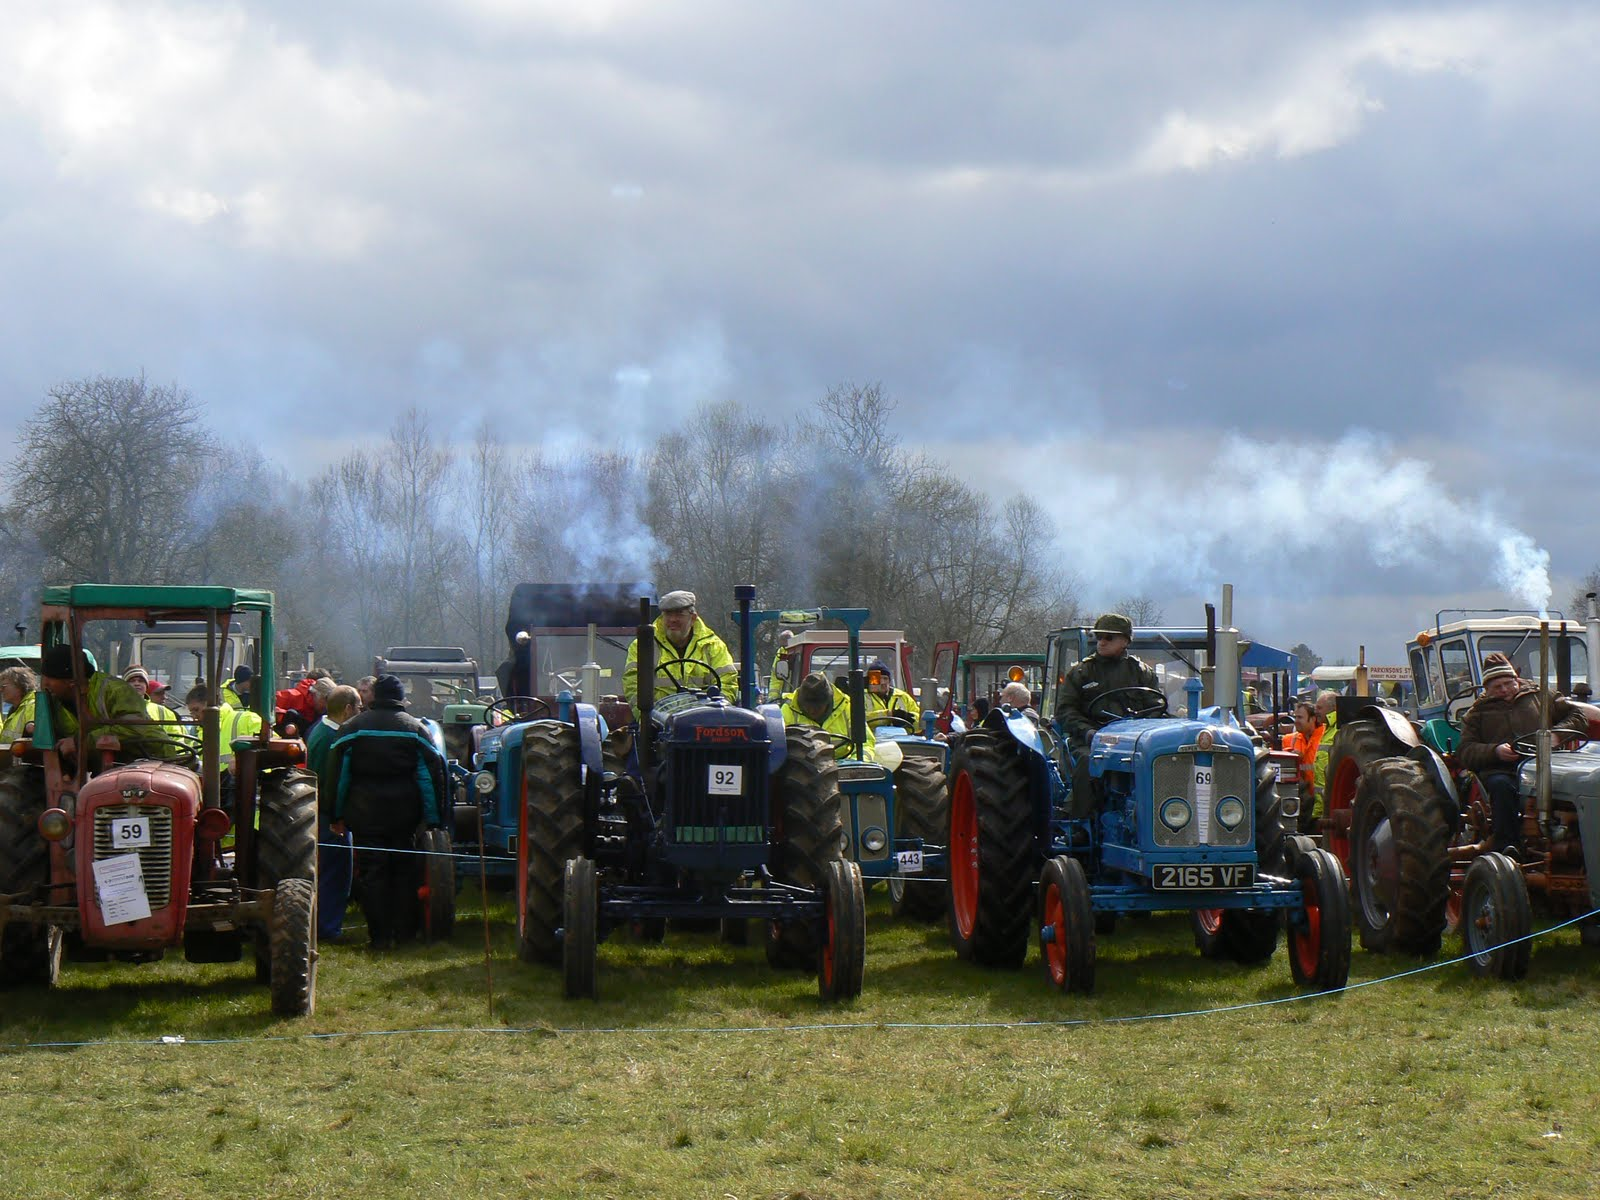 Over The Road Tractors : Used over the road tractors autos we